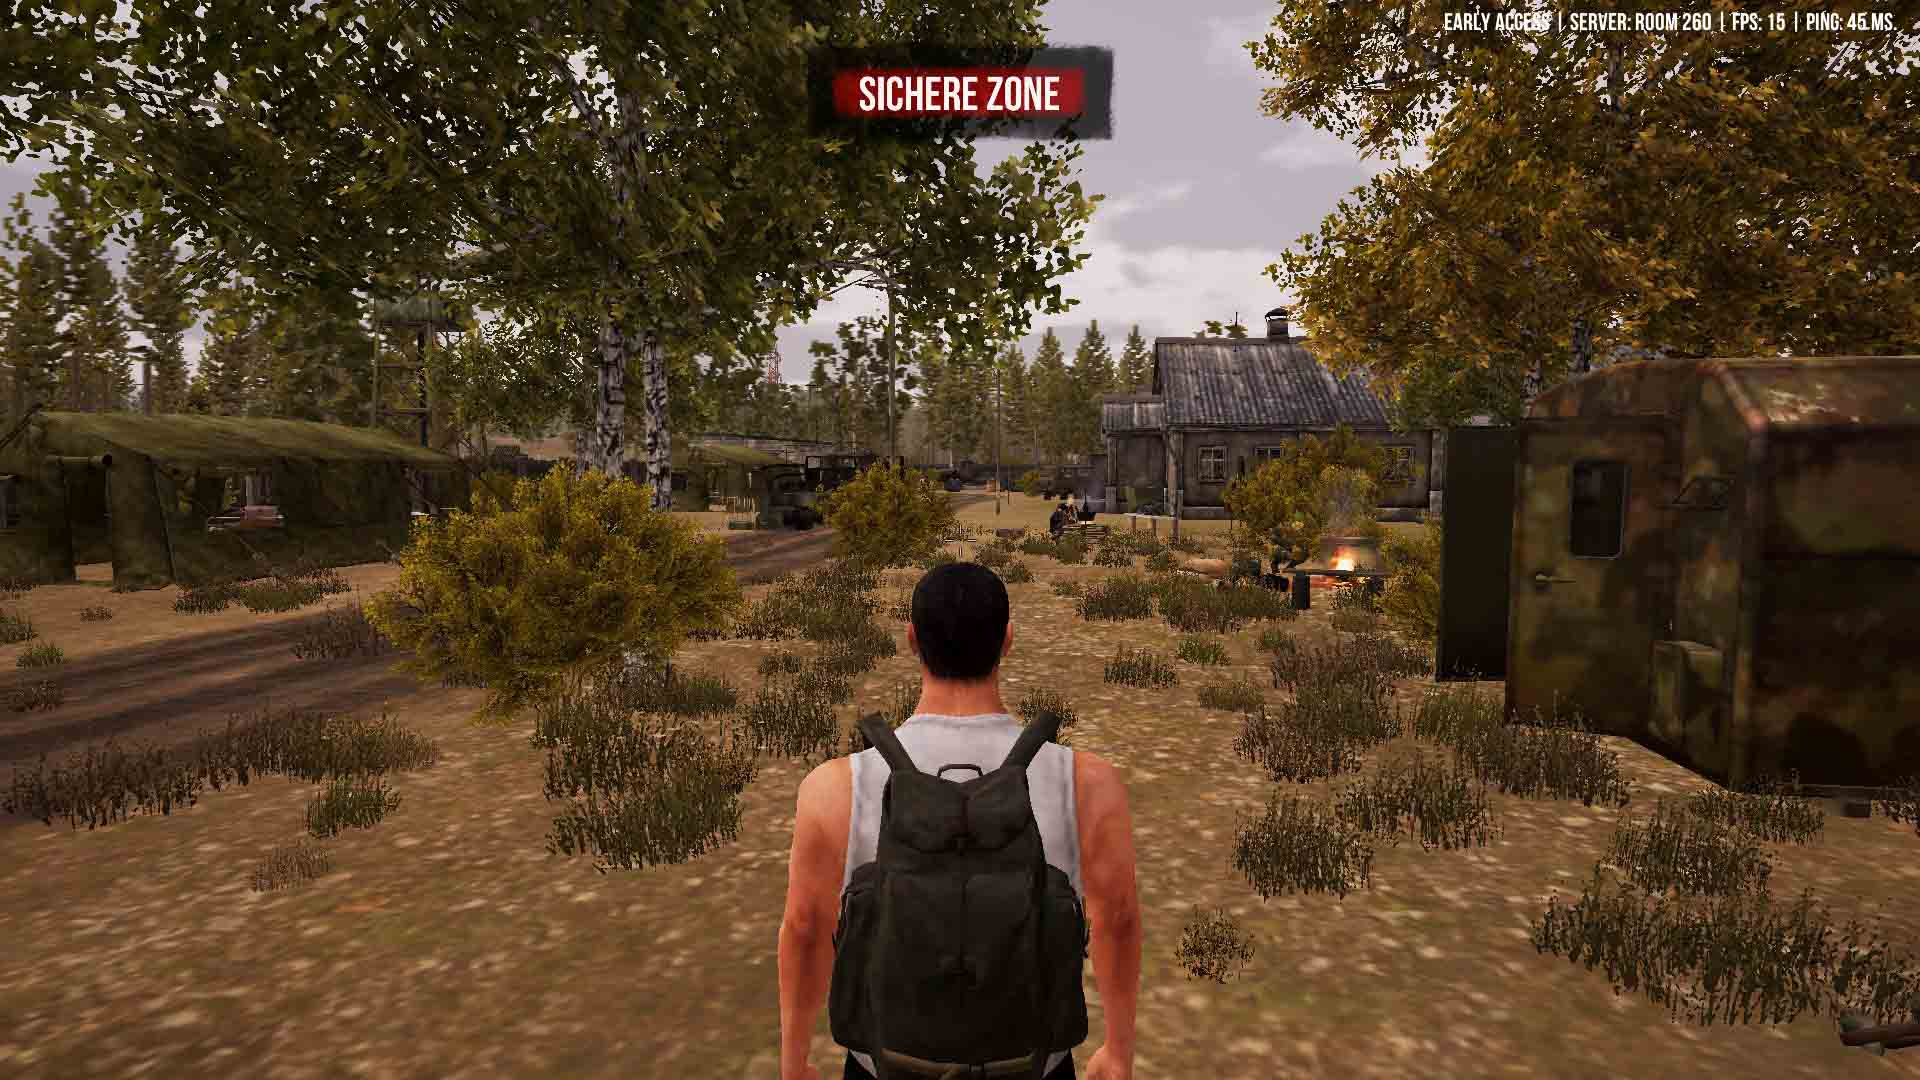 Safezone in Next Day: Survival